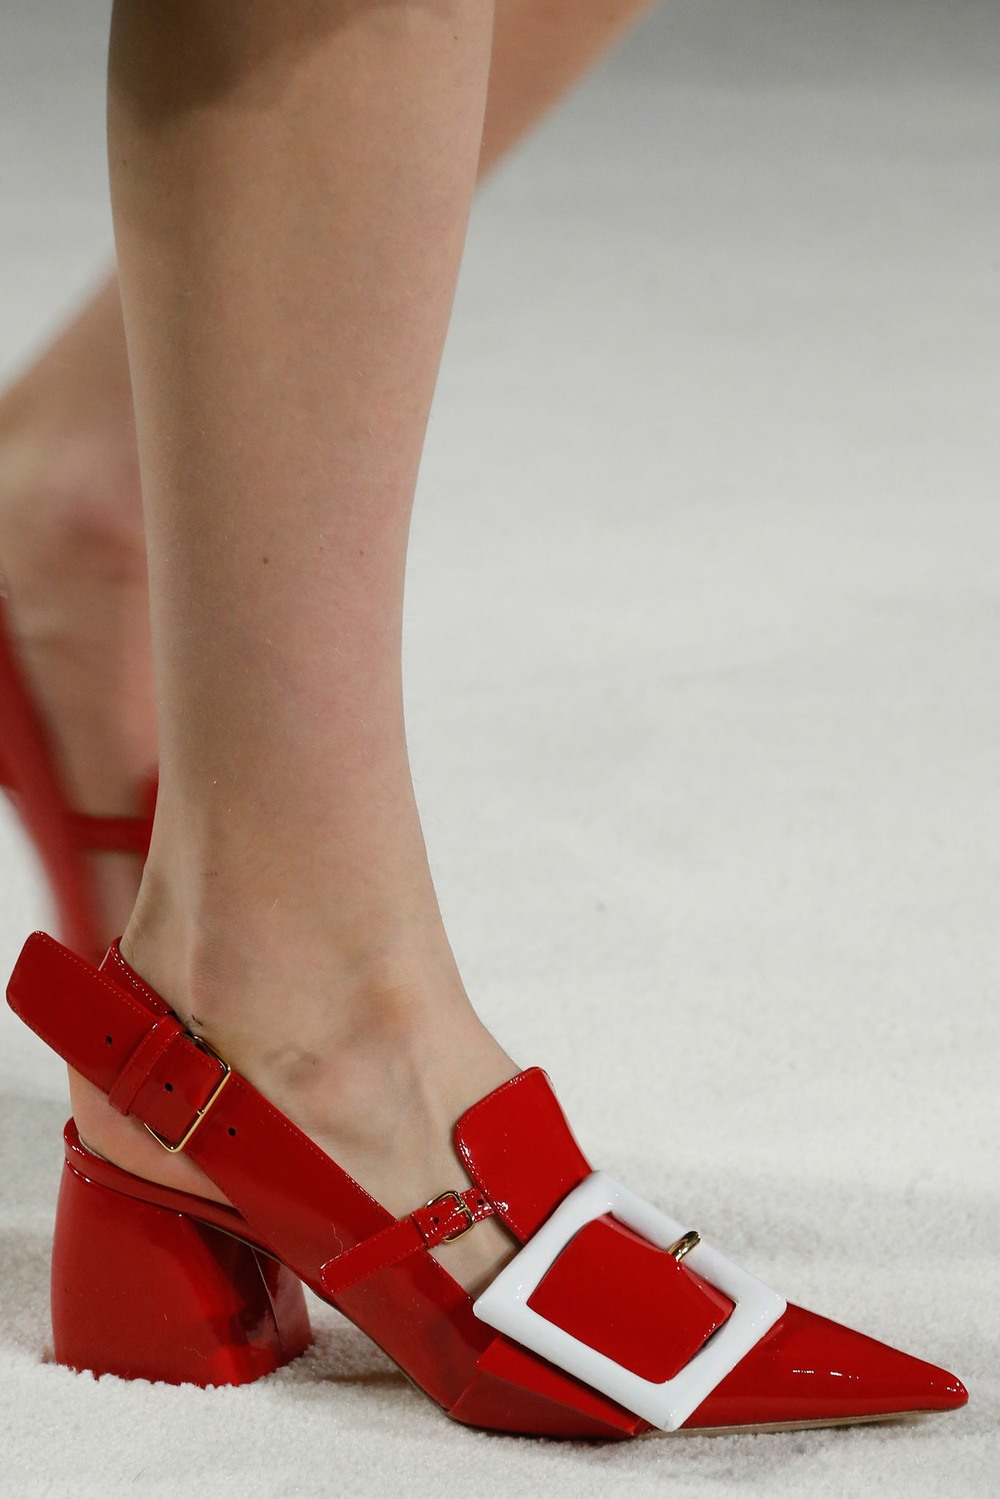 09-03-accessories-trends-fall-2015-red.jpg